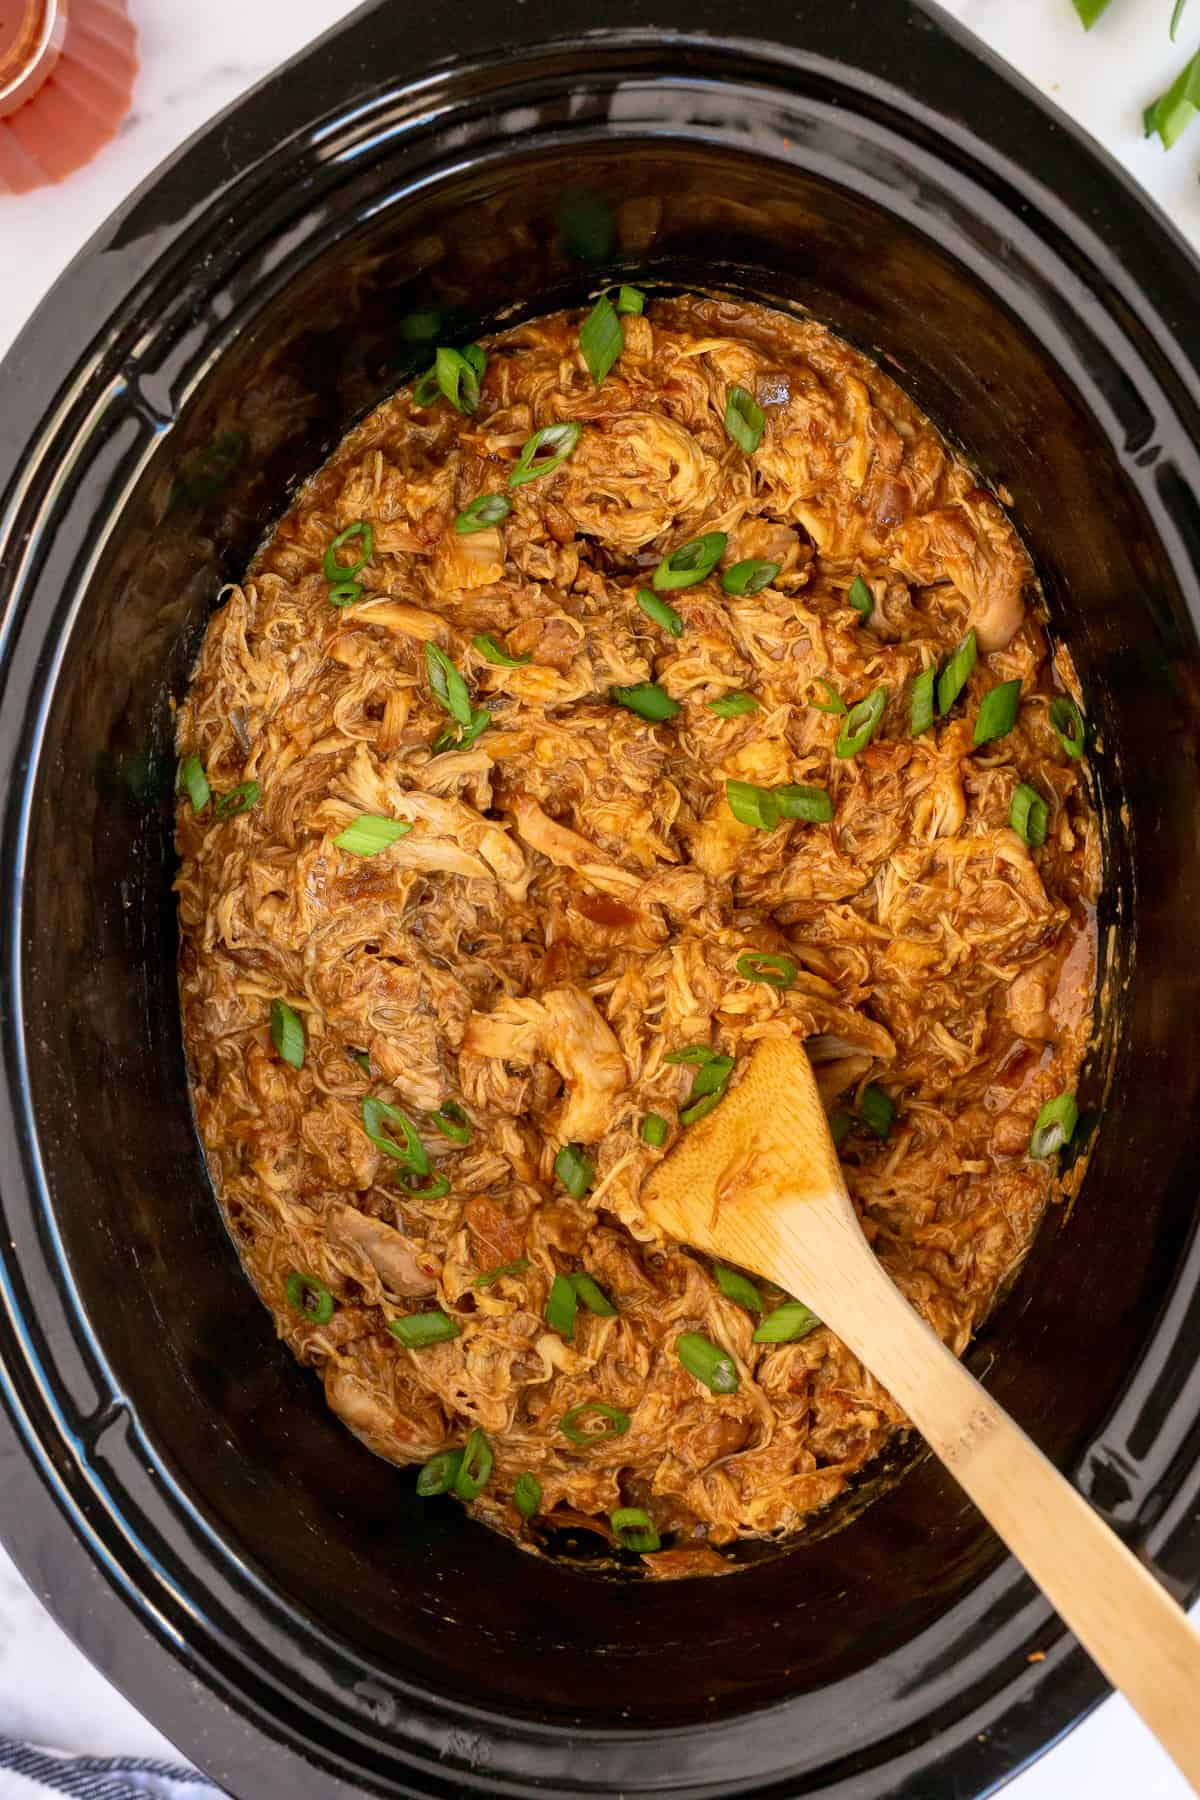 A wooden spoon stirs Honey Soy Chicken in a slow cooker.